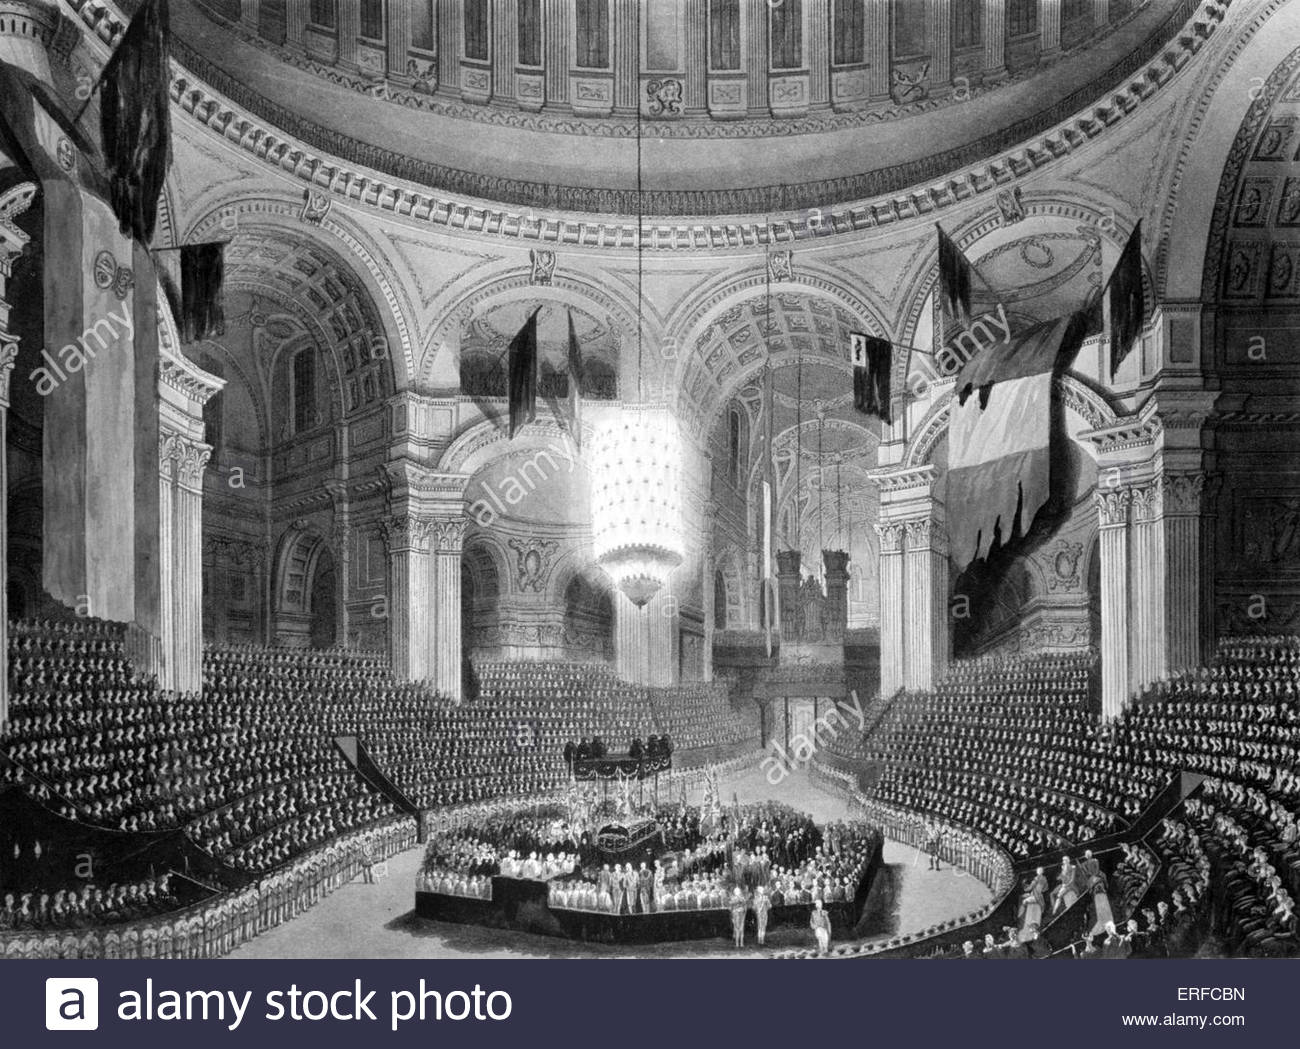 Interment of Lord Viscount Nelson in St Paul's Cathedral, London. Engraved by F C Lewis from a drawing from - Stock Image